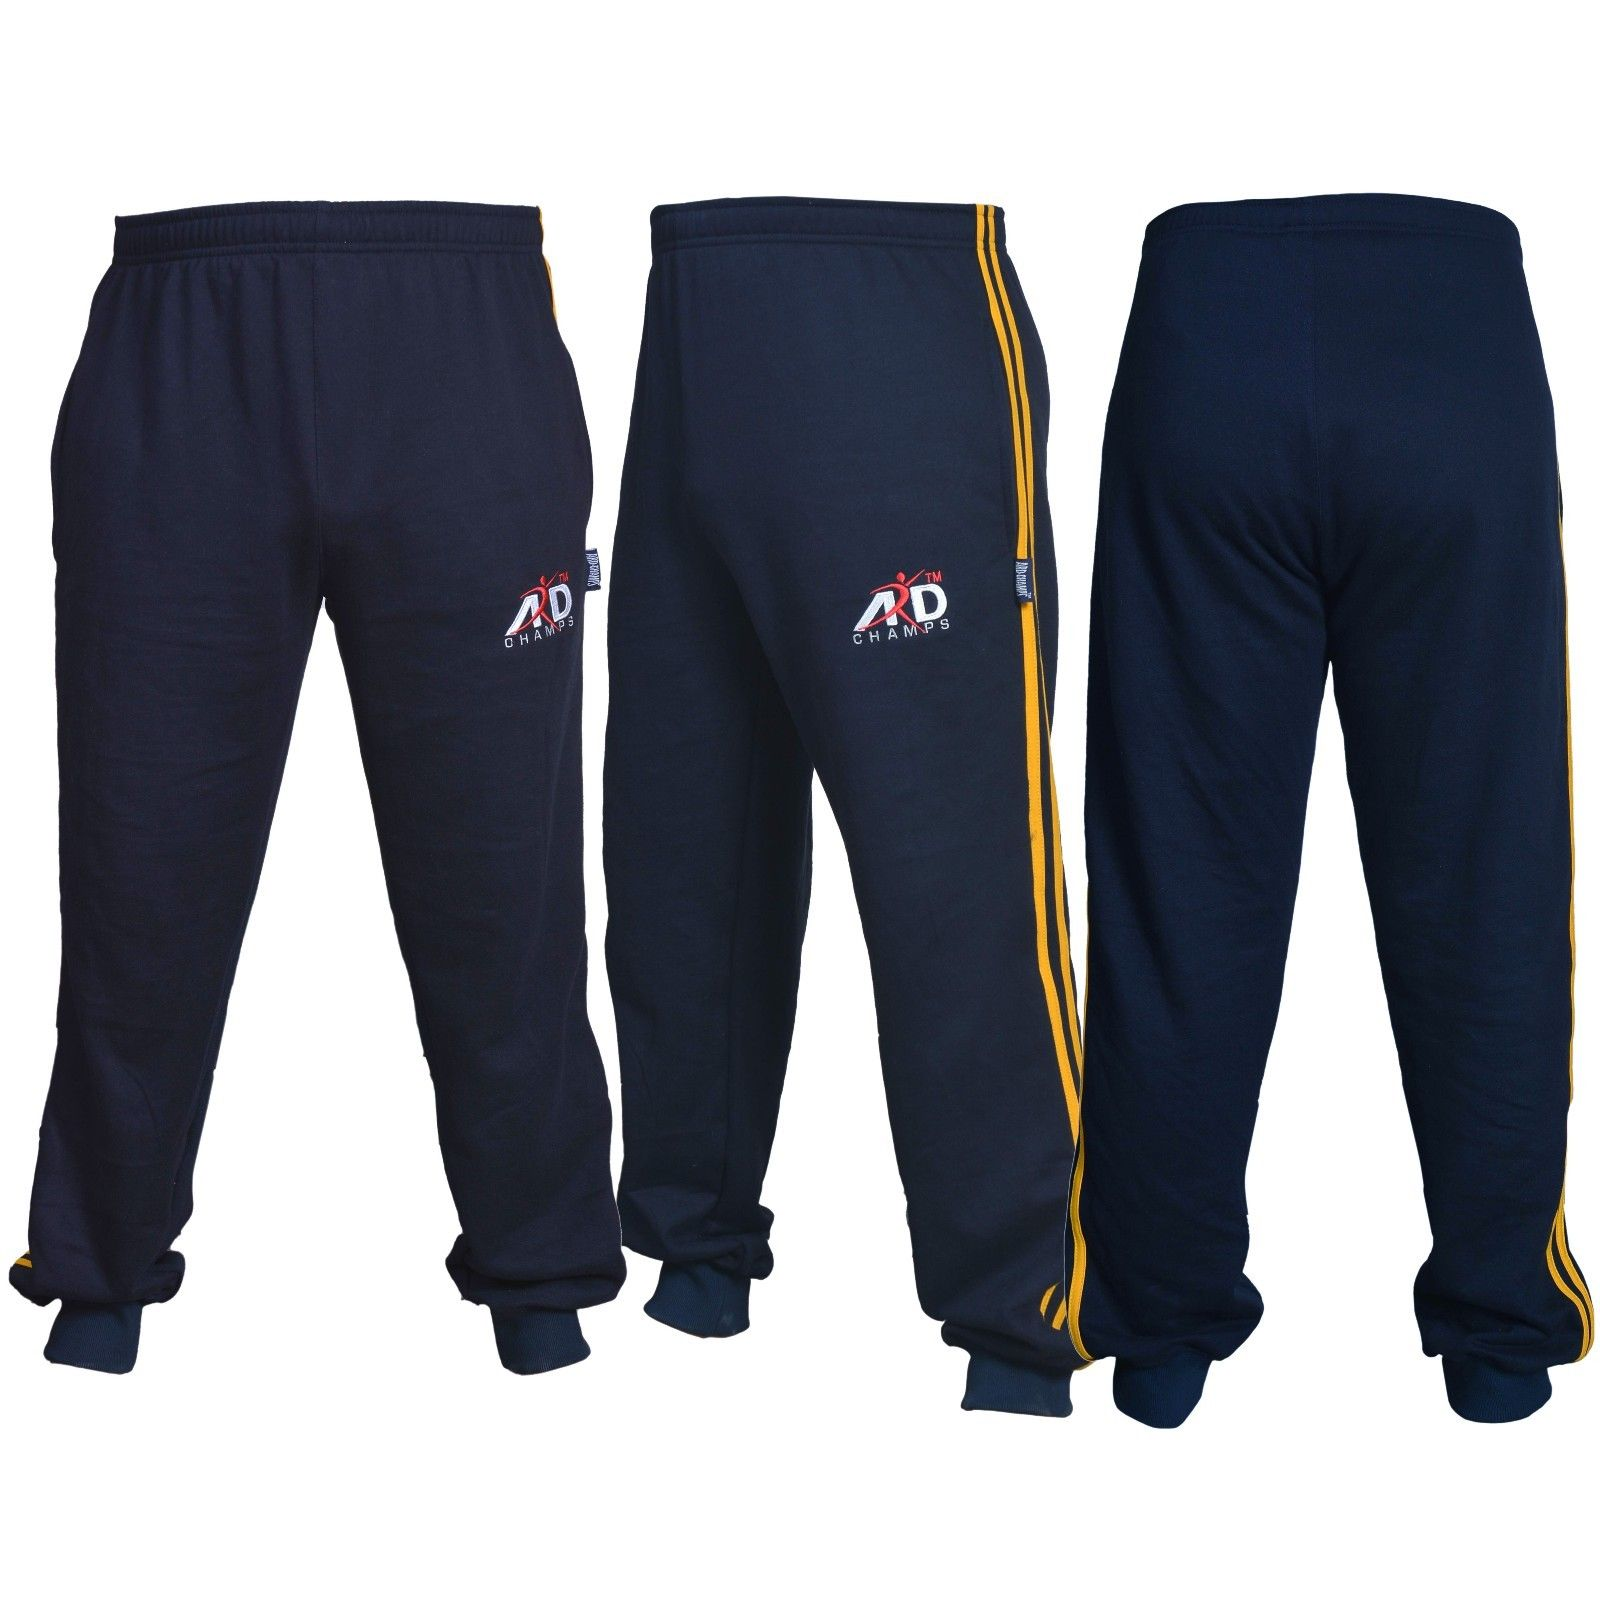 ARD CHAMPS™ Cotton Fleece Trouser MMA Gym Boxing Running Jogging Trousers Navy Blue Small